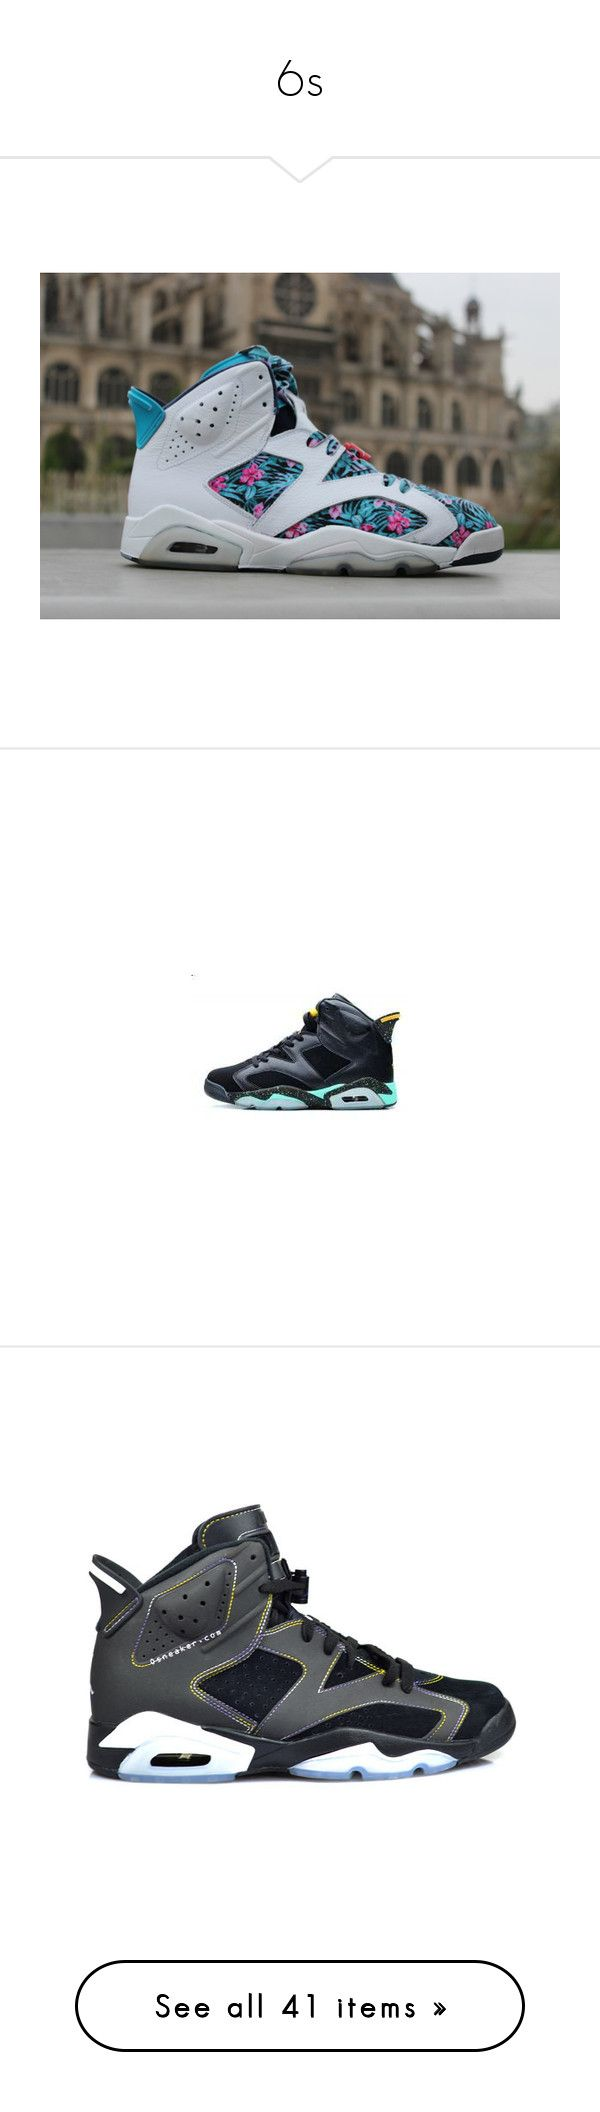 """""""6s"""" by sugartrap ❤ liked on Polyvore featuring shoes, jordans, sneakers, air jordan 6, kid shoes, retro sneakers, retro style shoes, retro trainers, retro shoes and shoe game"""